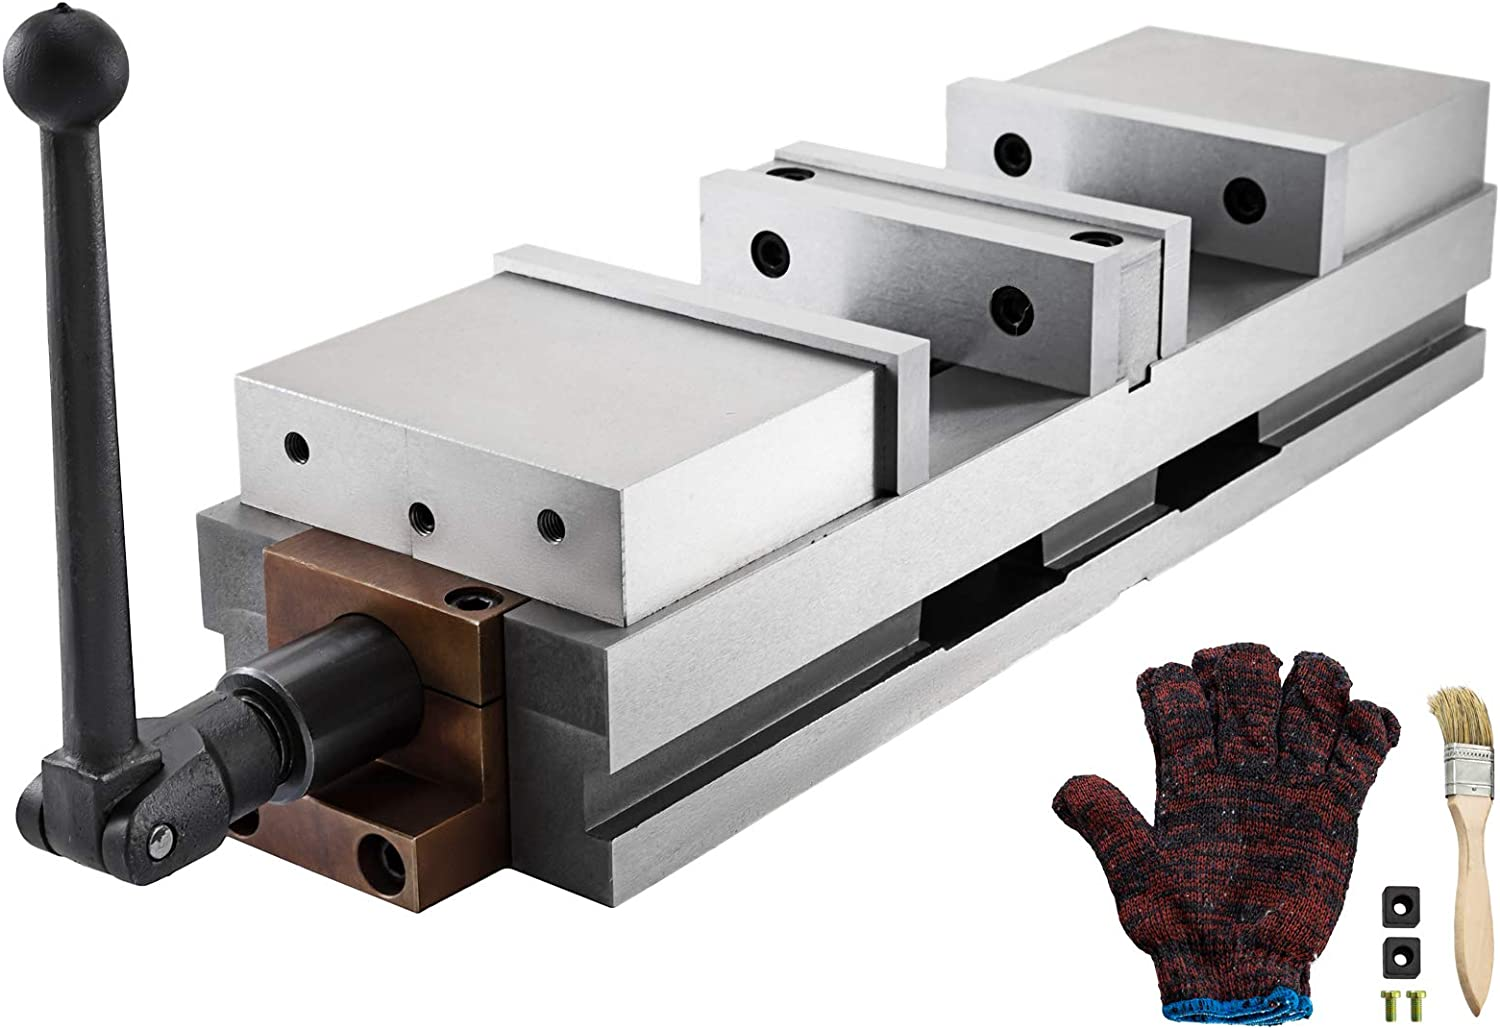 Mophorn 6 sale inch CNC Double Vise 11.10 Machine Milling Drilling in San Jose Mall